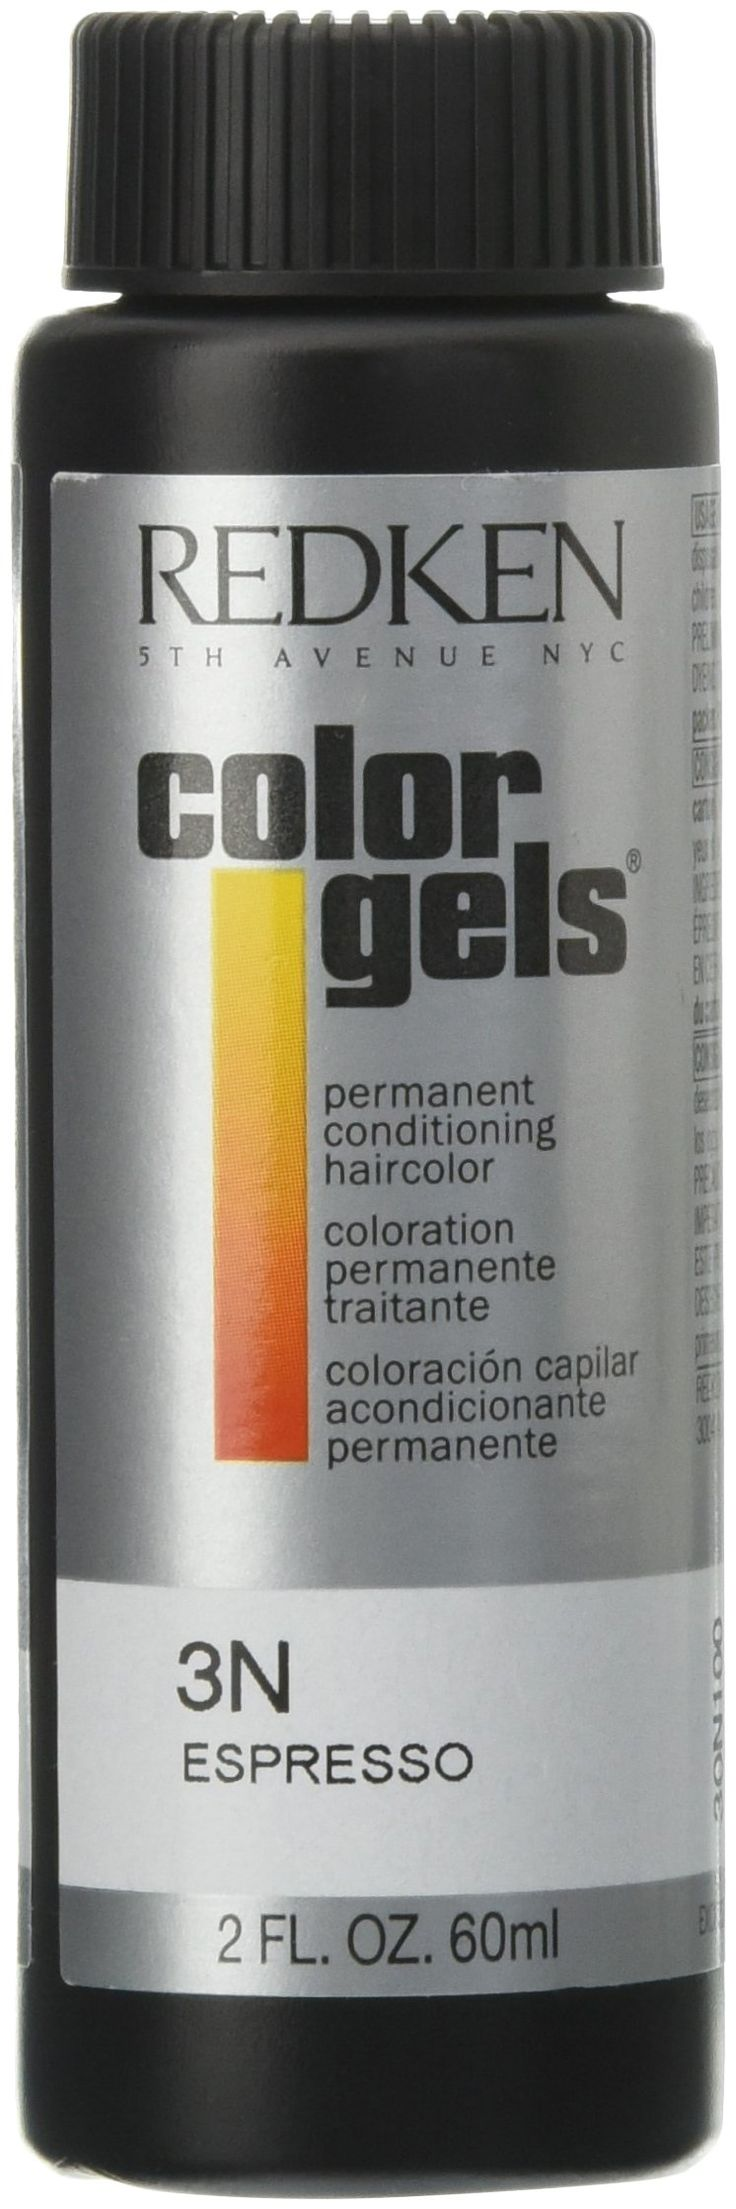 Redken Color Gels Permanent Conditioning 3N Espresso Hair Color for Unisex, 2 Ounce. Use it to brighten, darken, change or correct, or for highlighting and creative color effects. Color gels provides exceptional gray coverage. Results are long lasting and hair is left in superior condition.